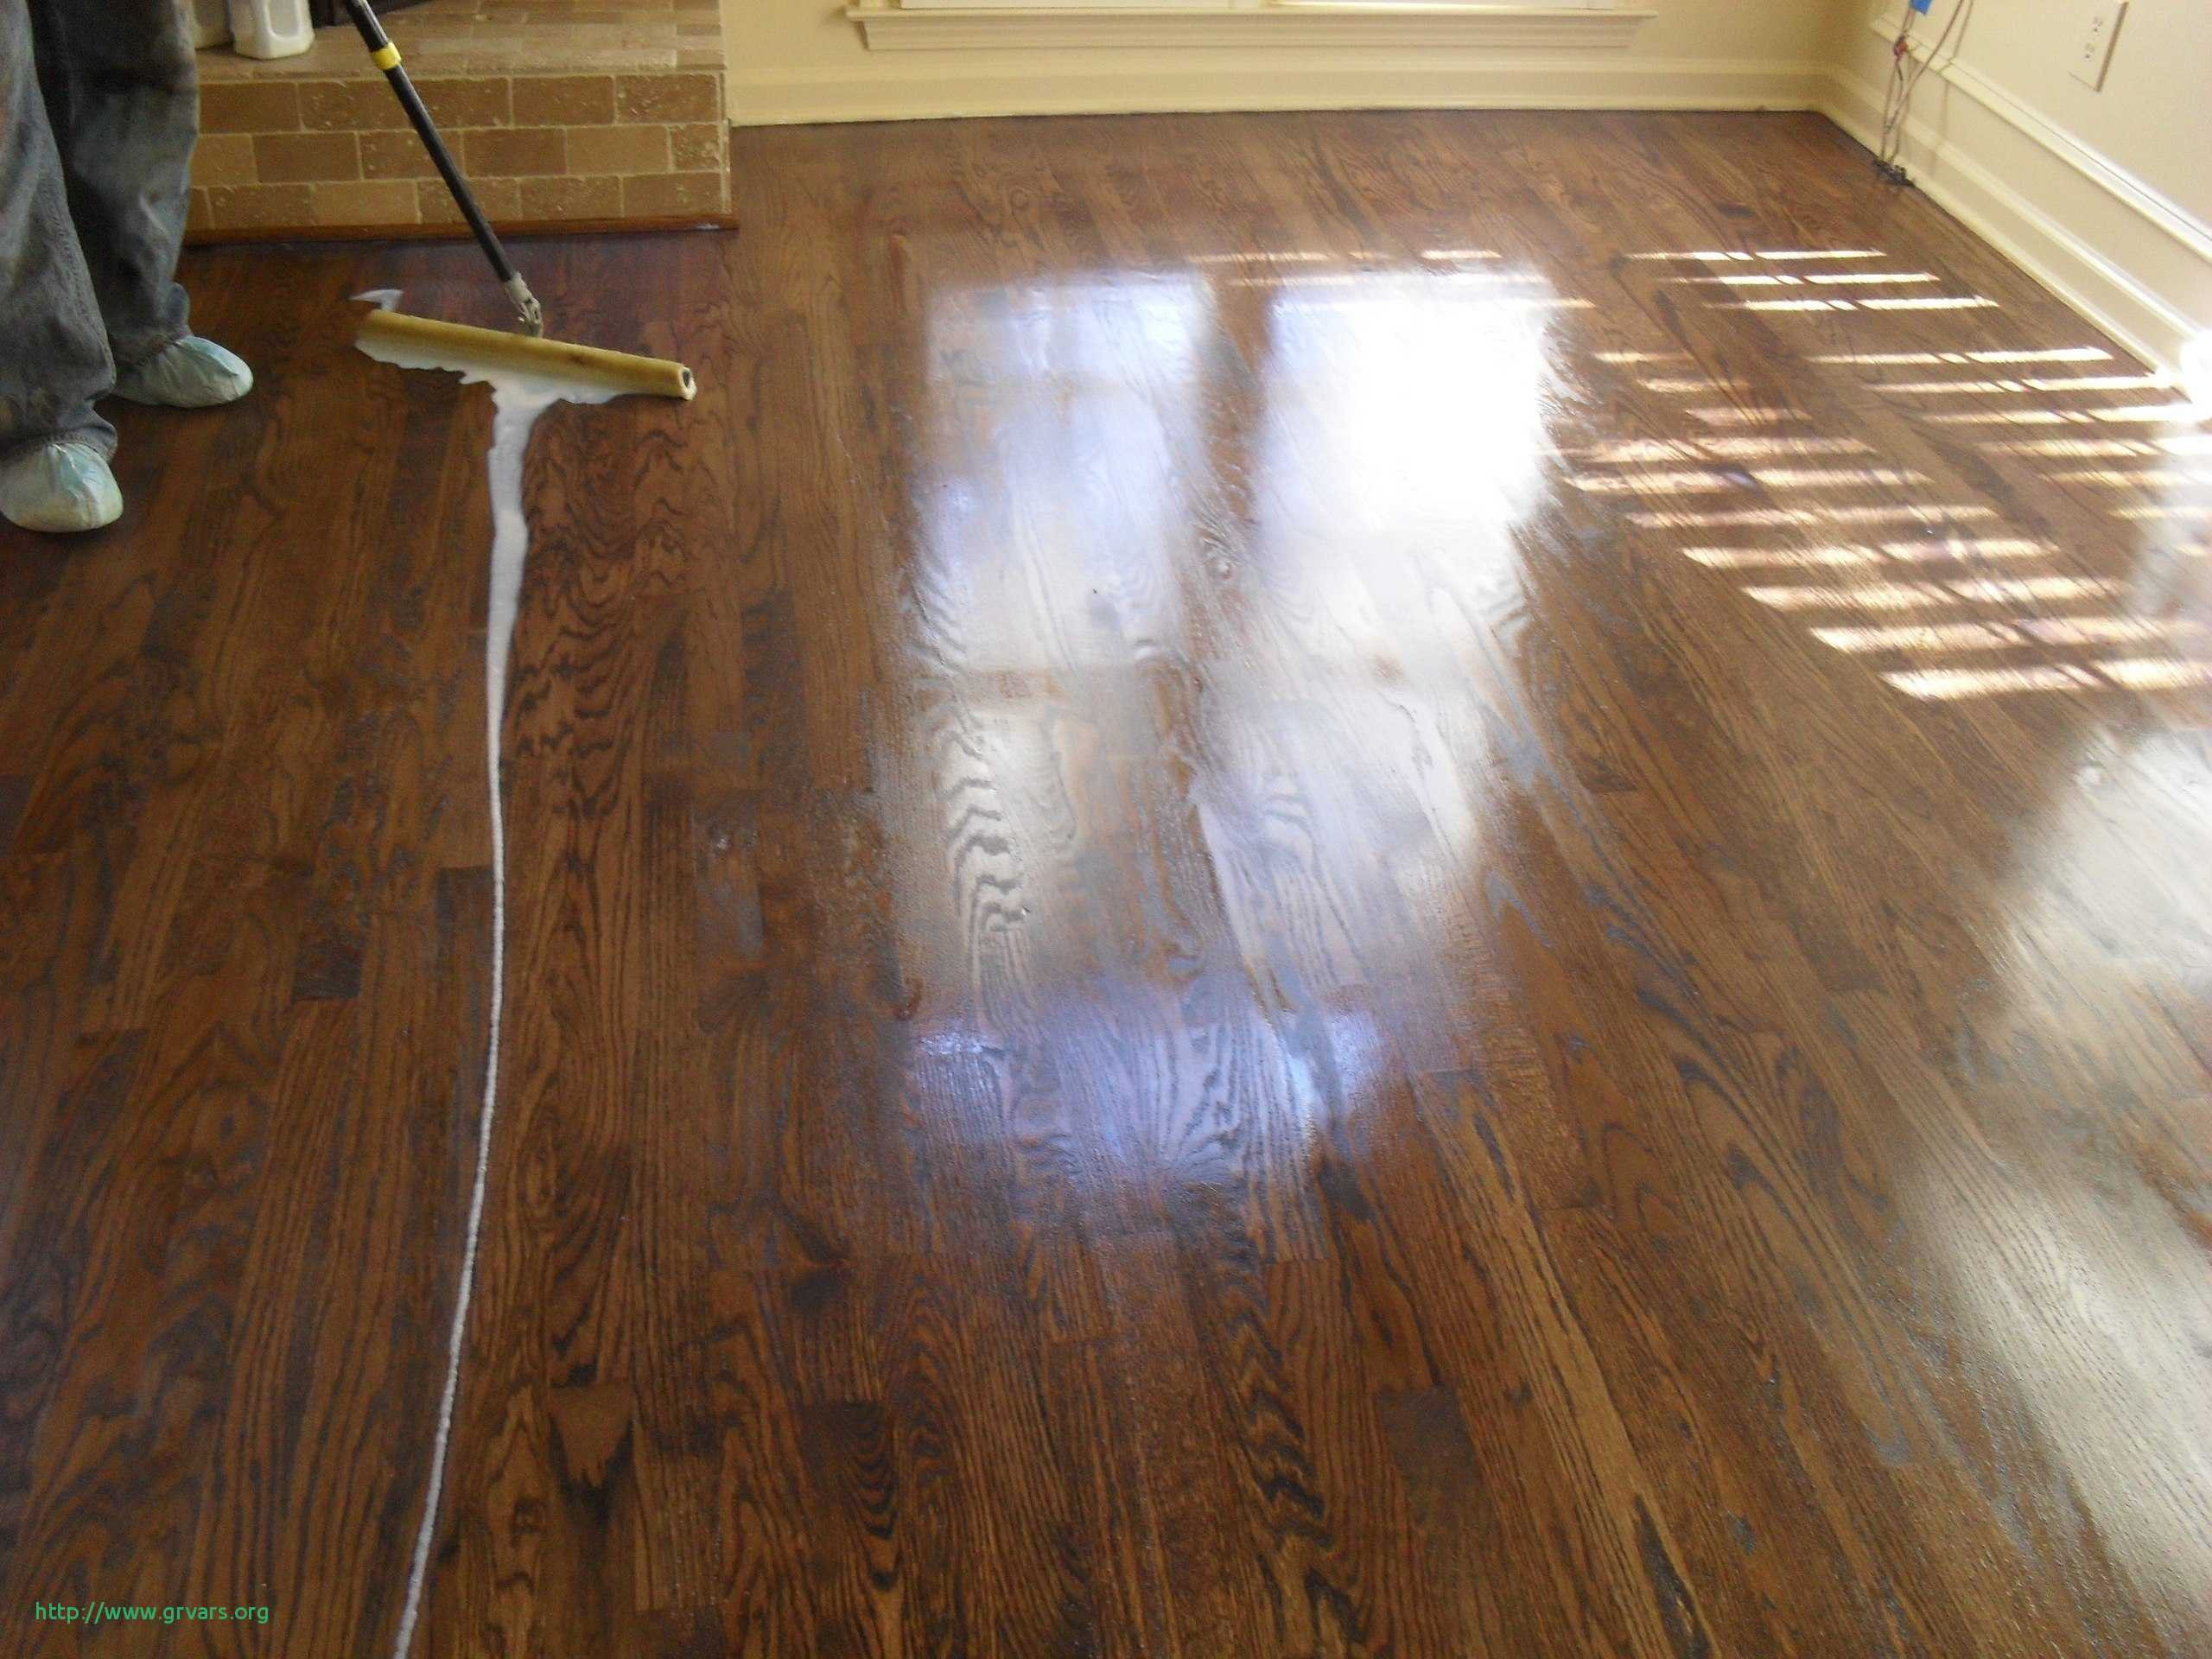 Refinishing Hardwood Floors without Sanding Opt Of Image Number 6563 From Post Restoring Old Hardwood Floors Will Throughout Nouveau Hardwood Floors Yourself Ideas Restoring Old Will Inspirant Redo without Sanding Podemosleganes Lovely Refinishingod Pet